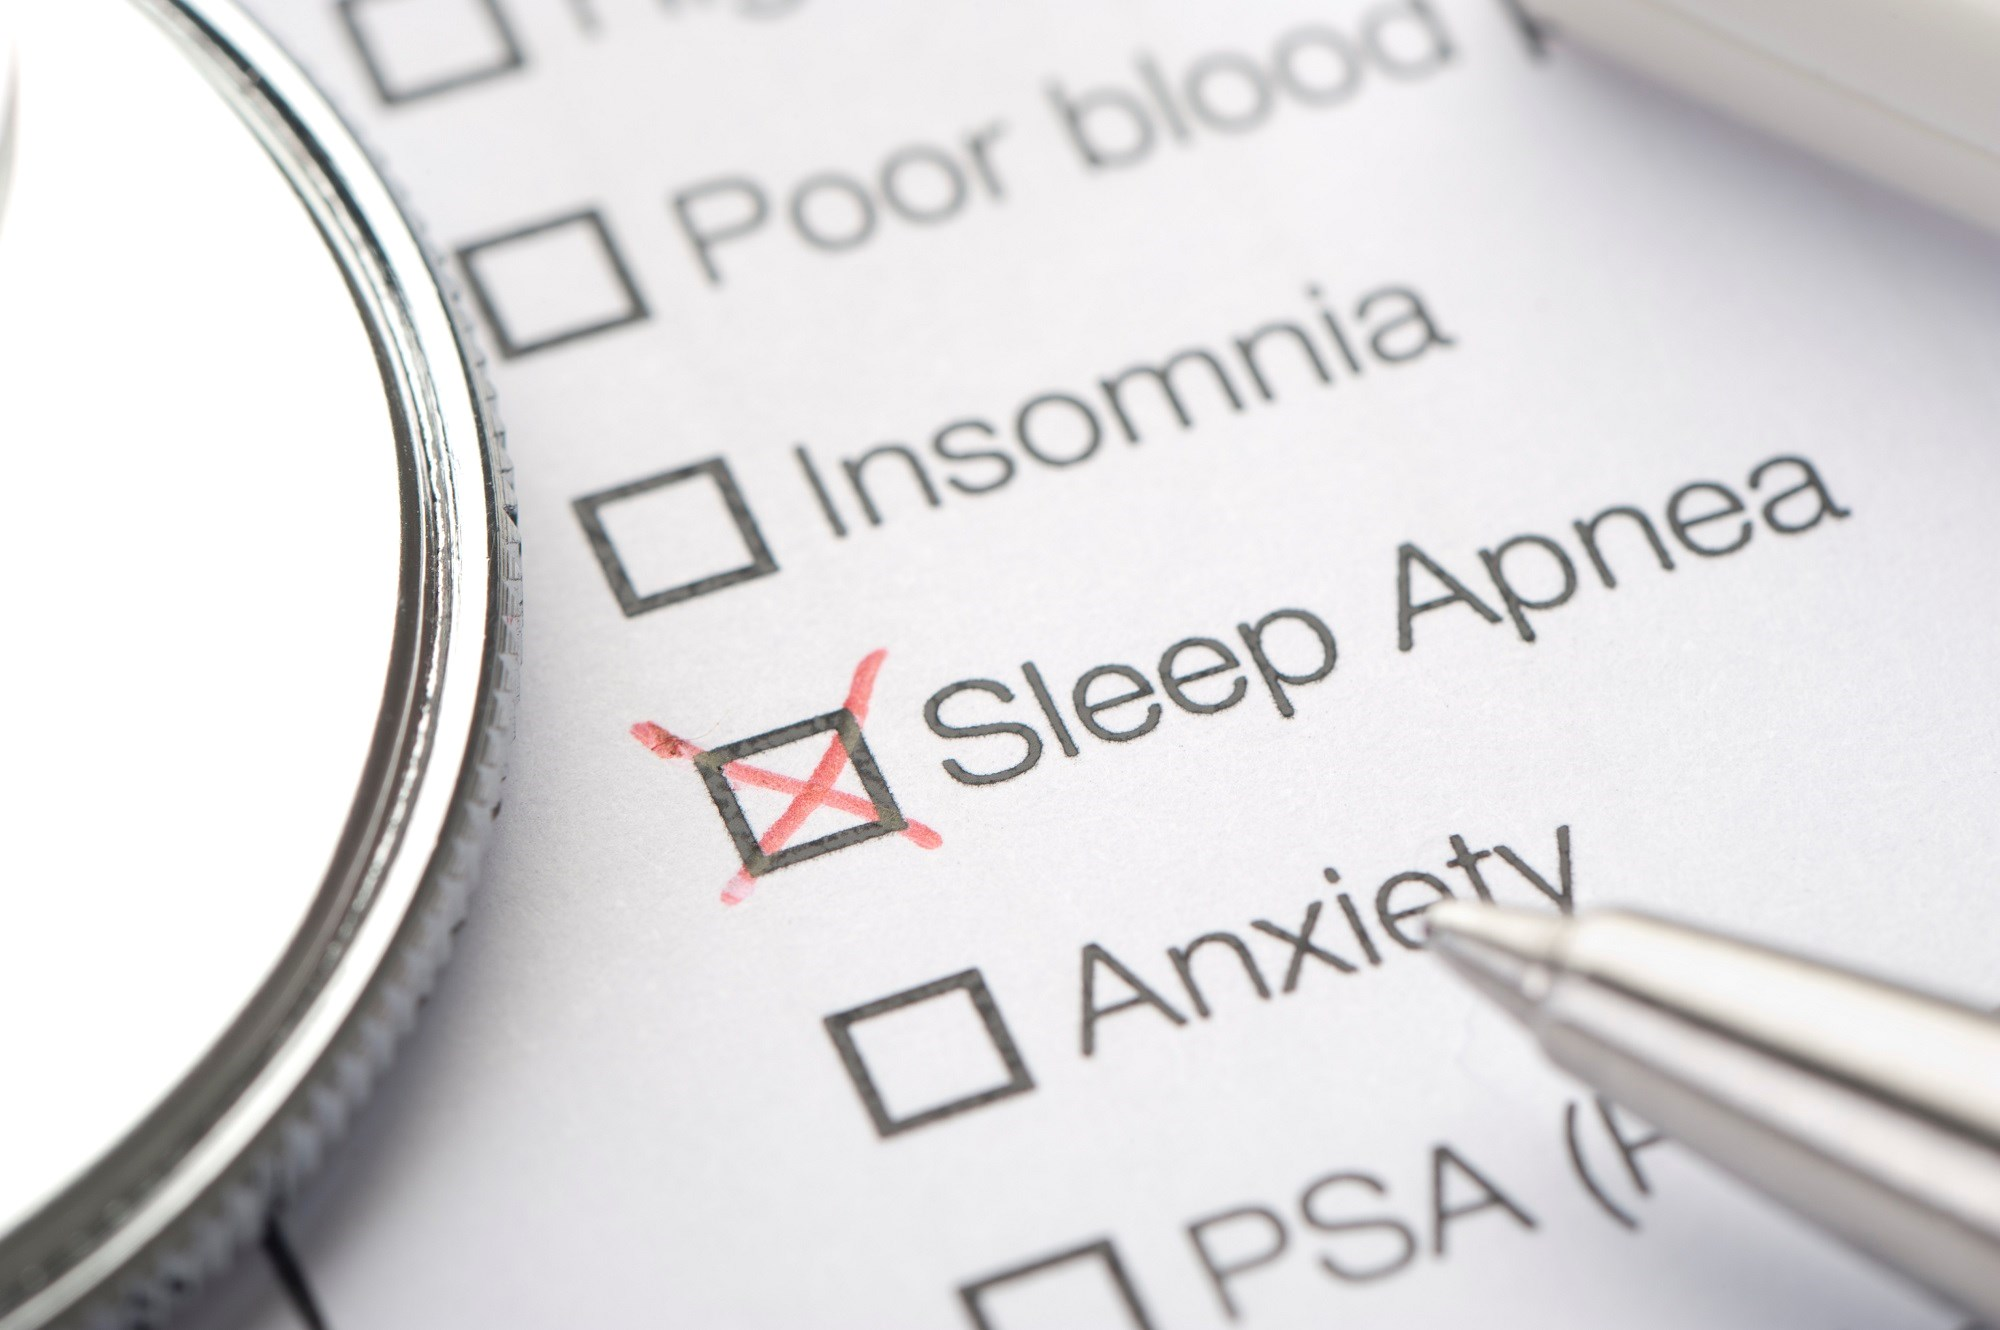 Sleep apnea may contribute to decreased quality of life, comorbidity, and mortality in patients with acromegaly.